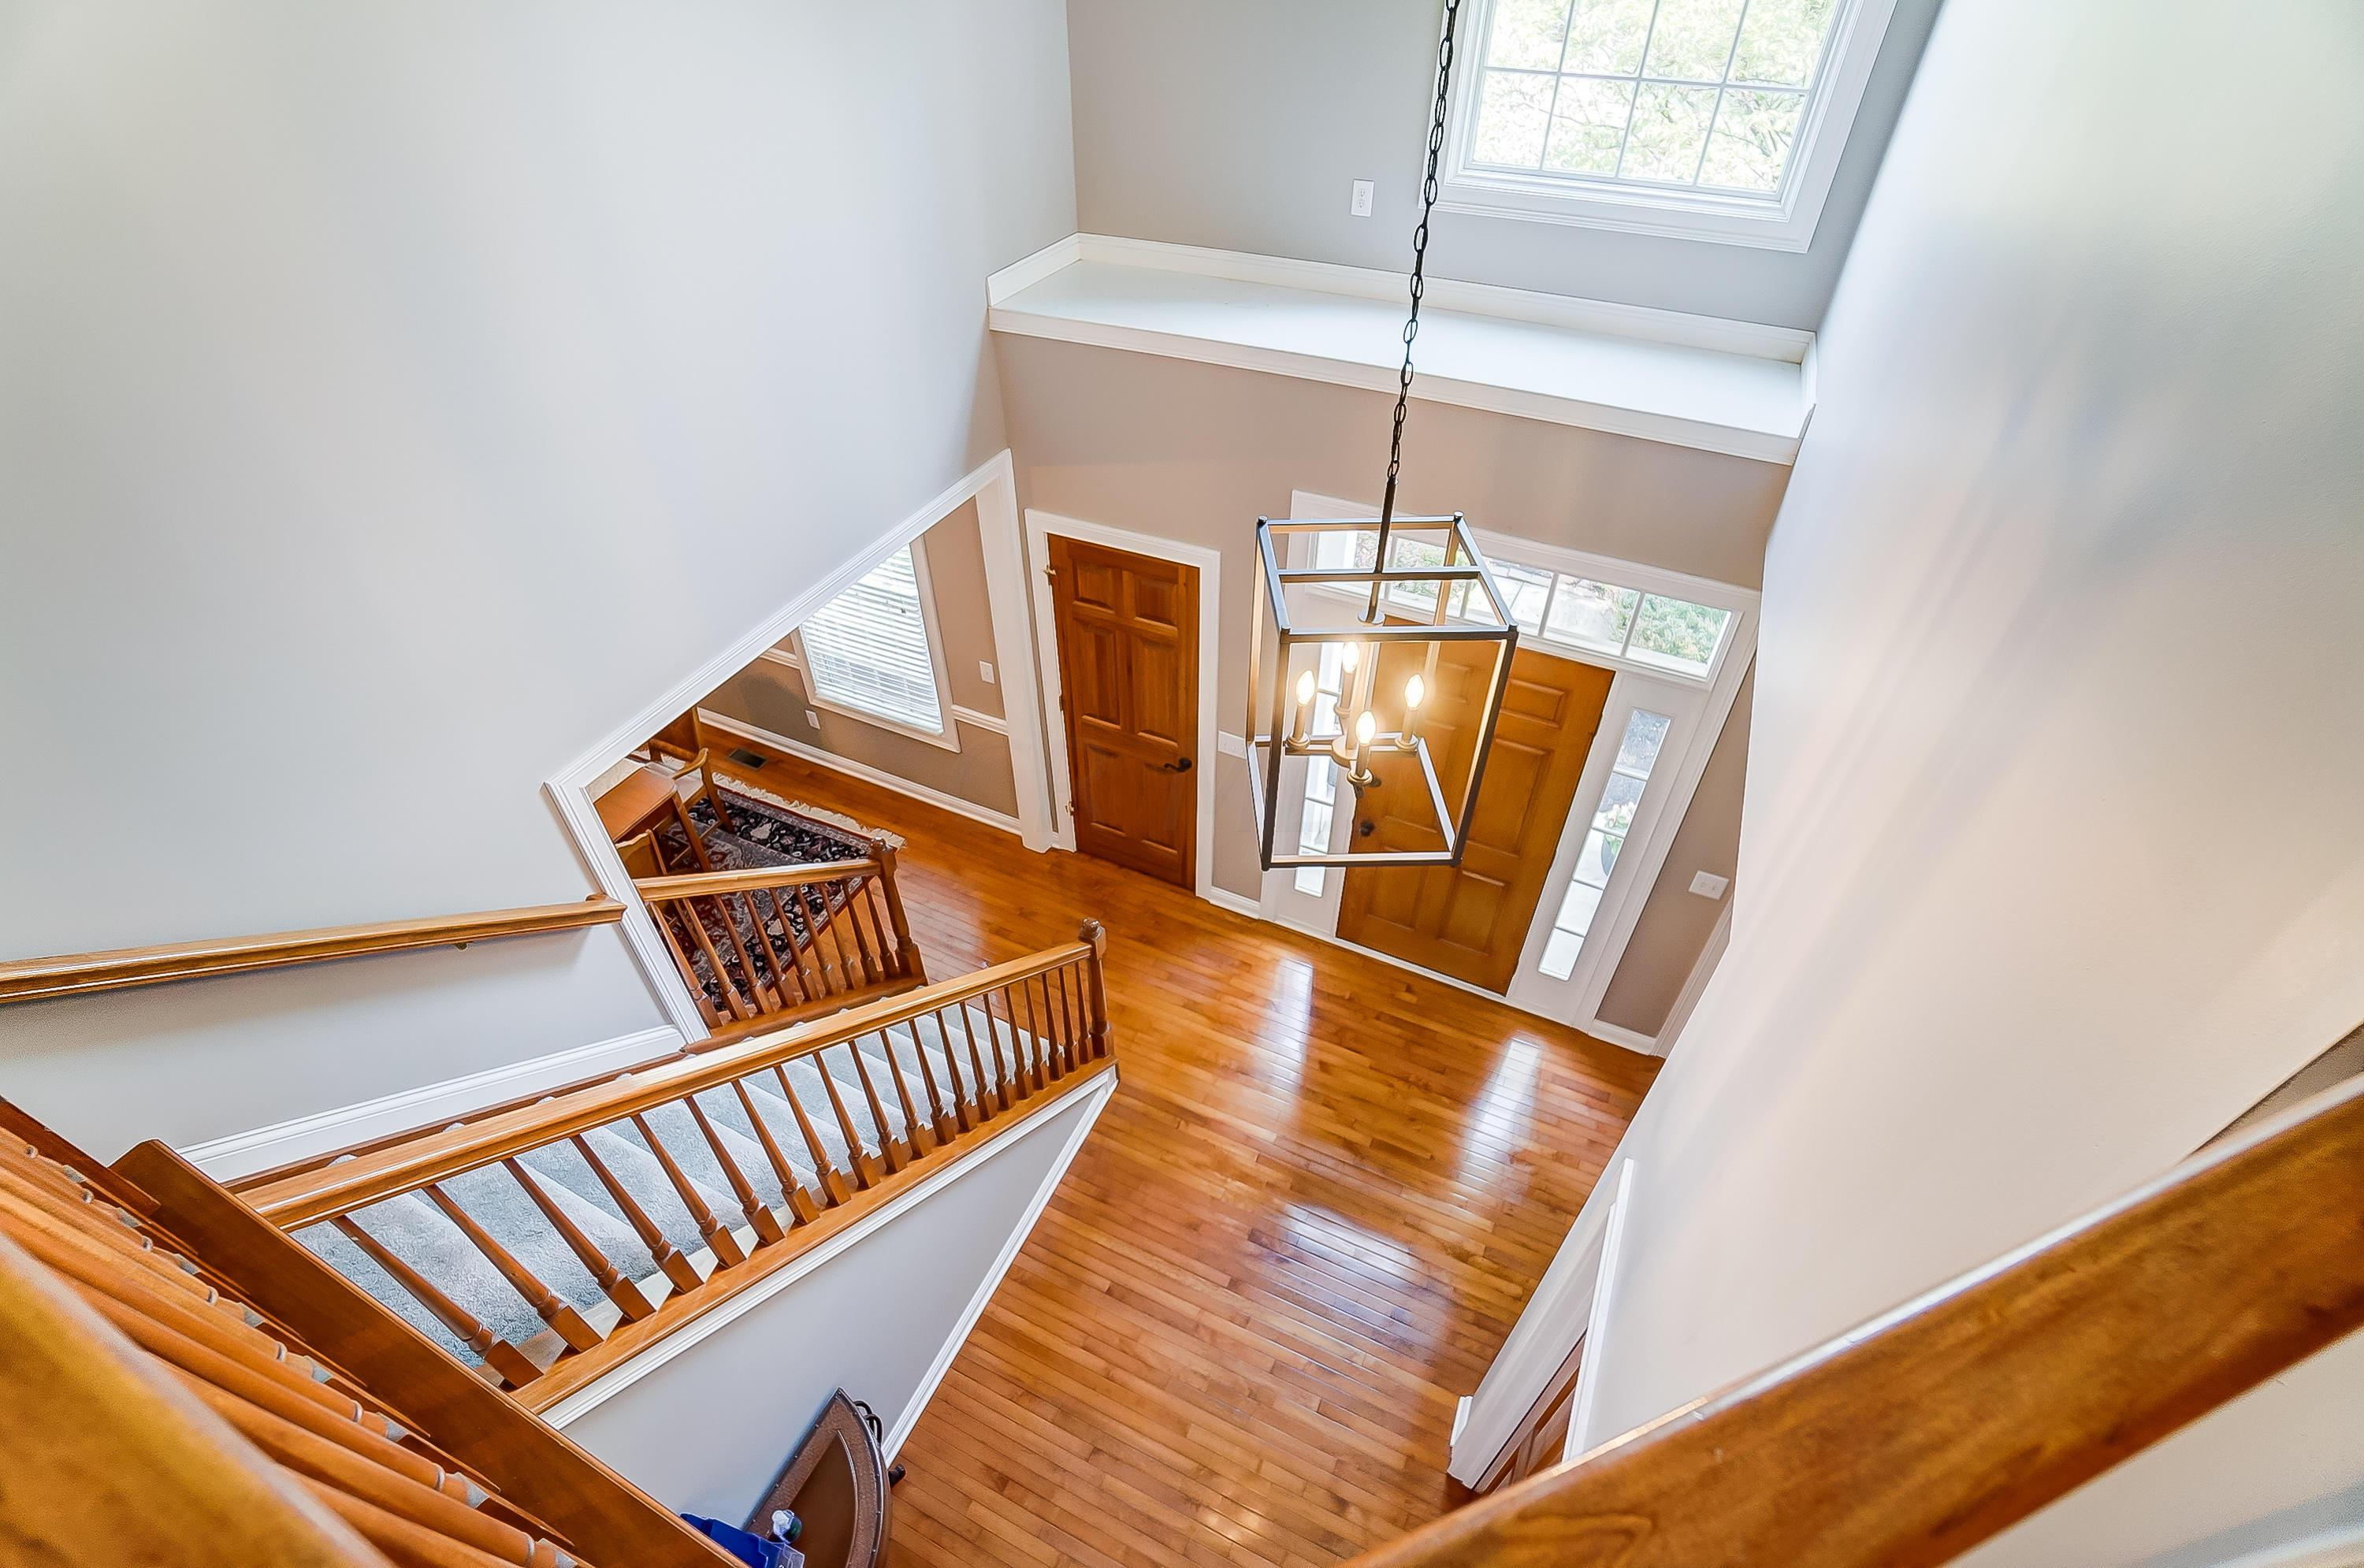 2 Story Entry View